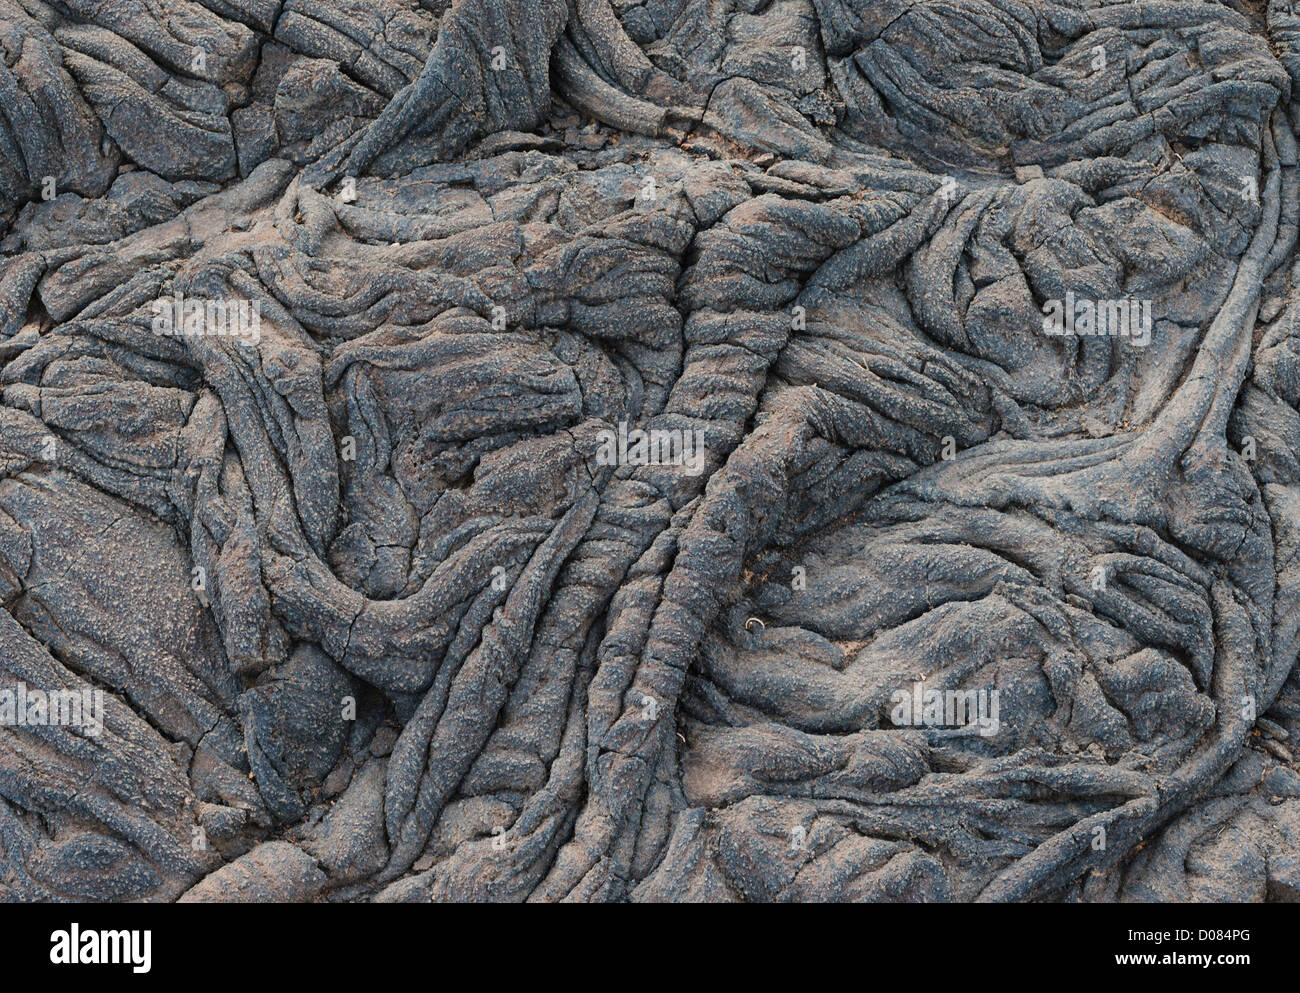 Detail of pahoehoe or ropy lava near La Restinga El HIerro, Canary Islands, Spain - Stock Image